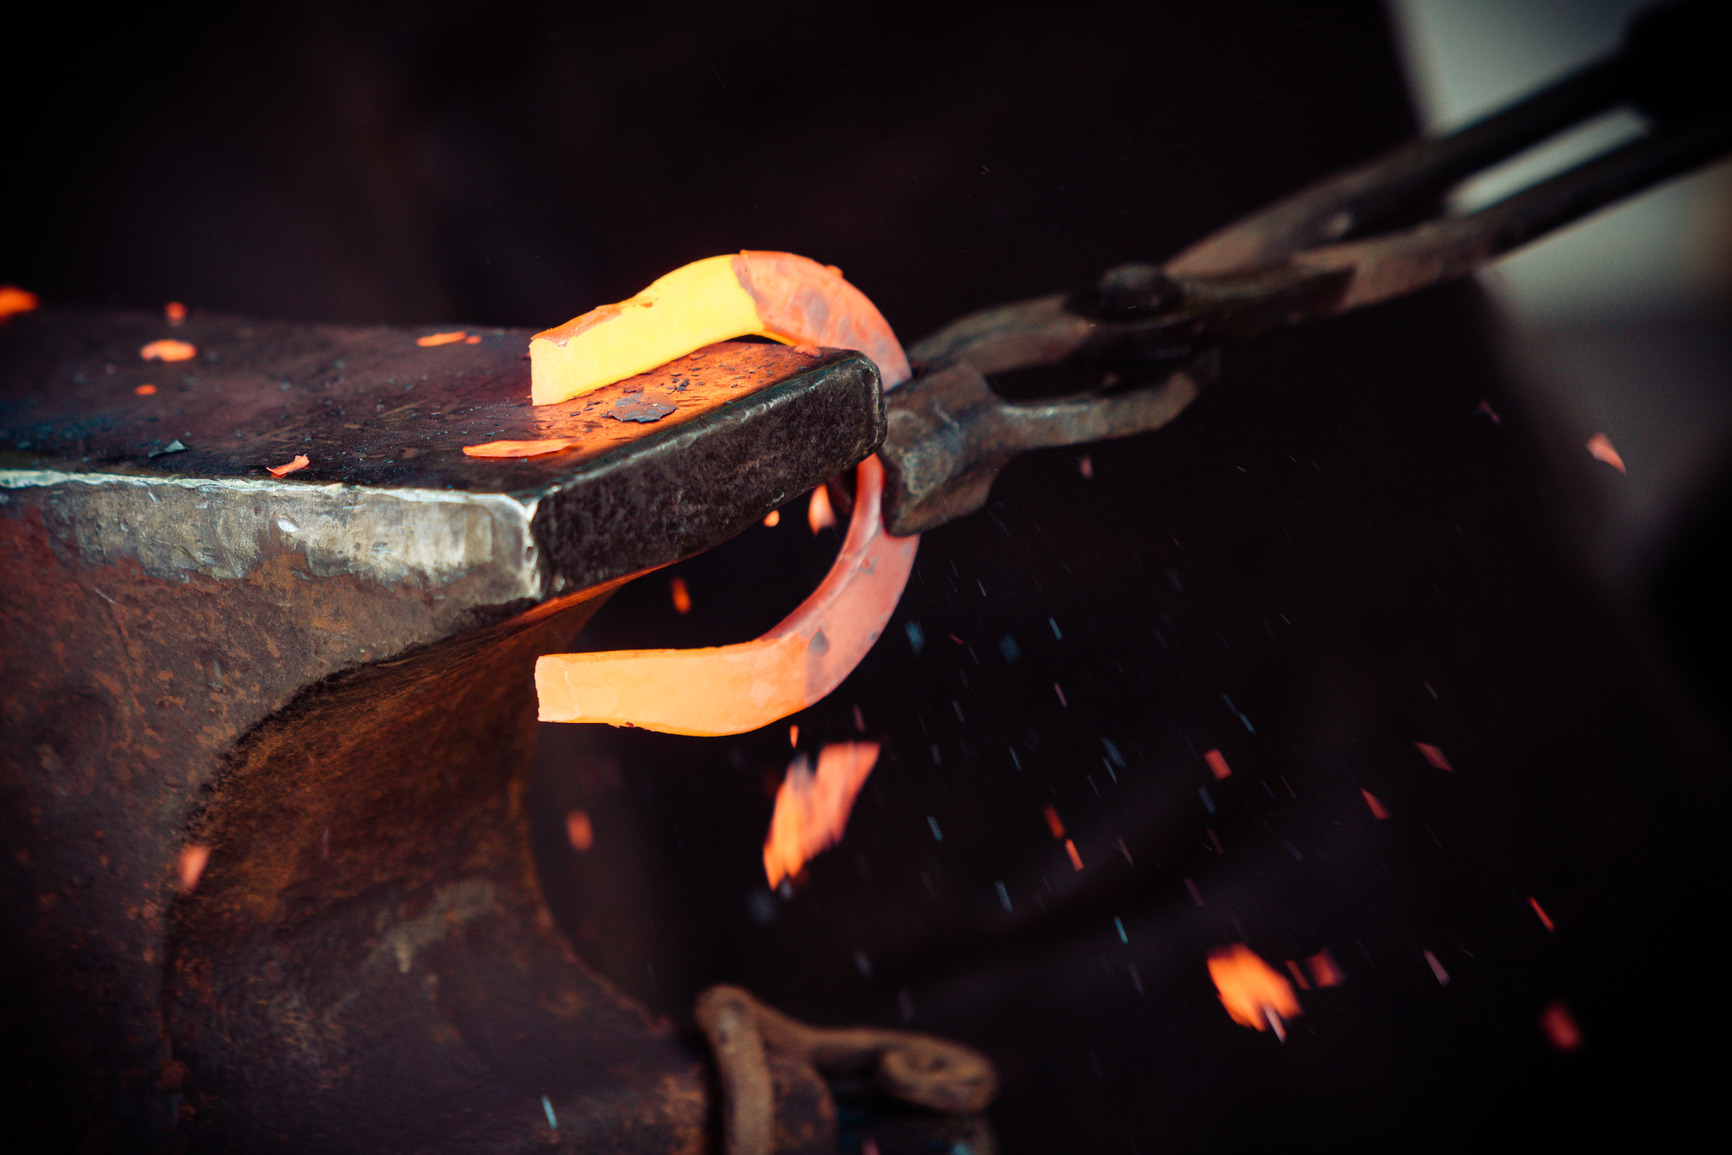 photodune-10174153-hammering-glowing-steel-to-strike-while-the-iron-is-hot-m